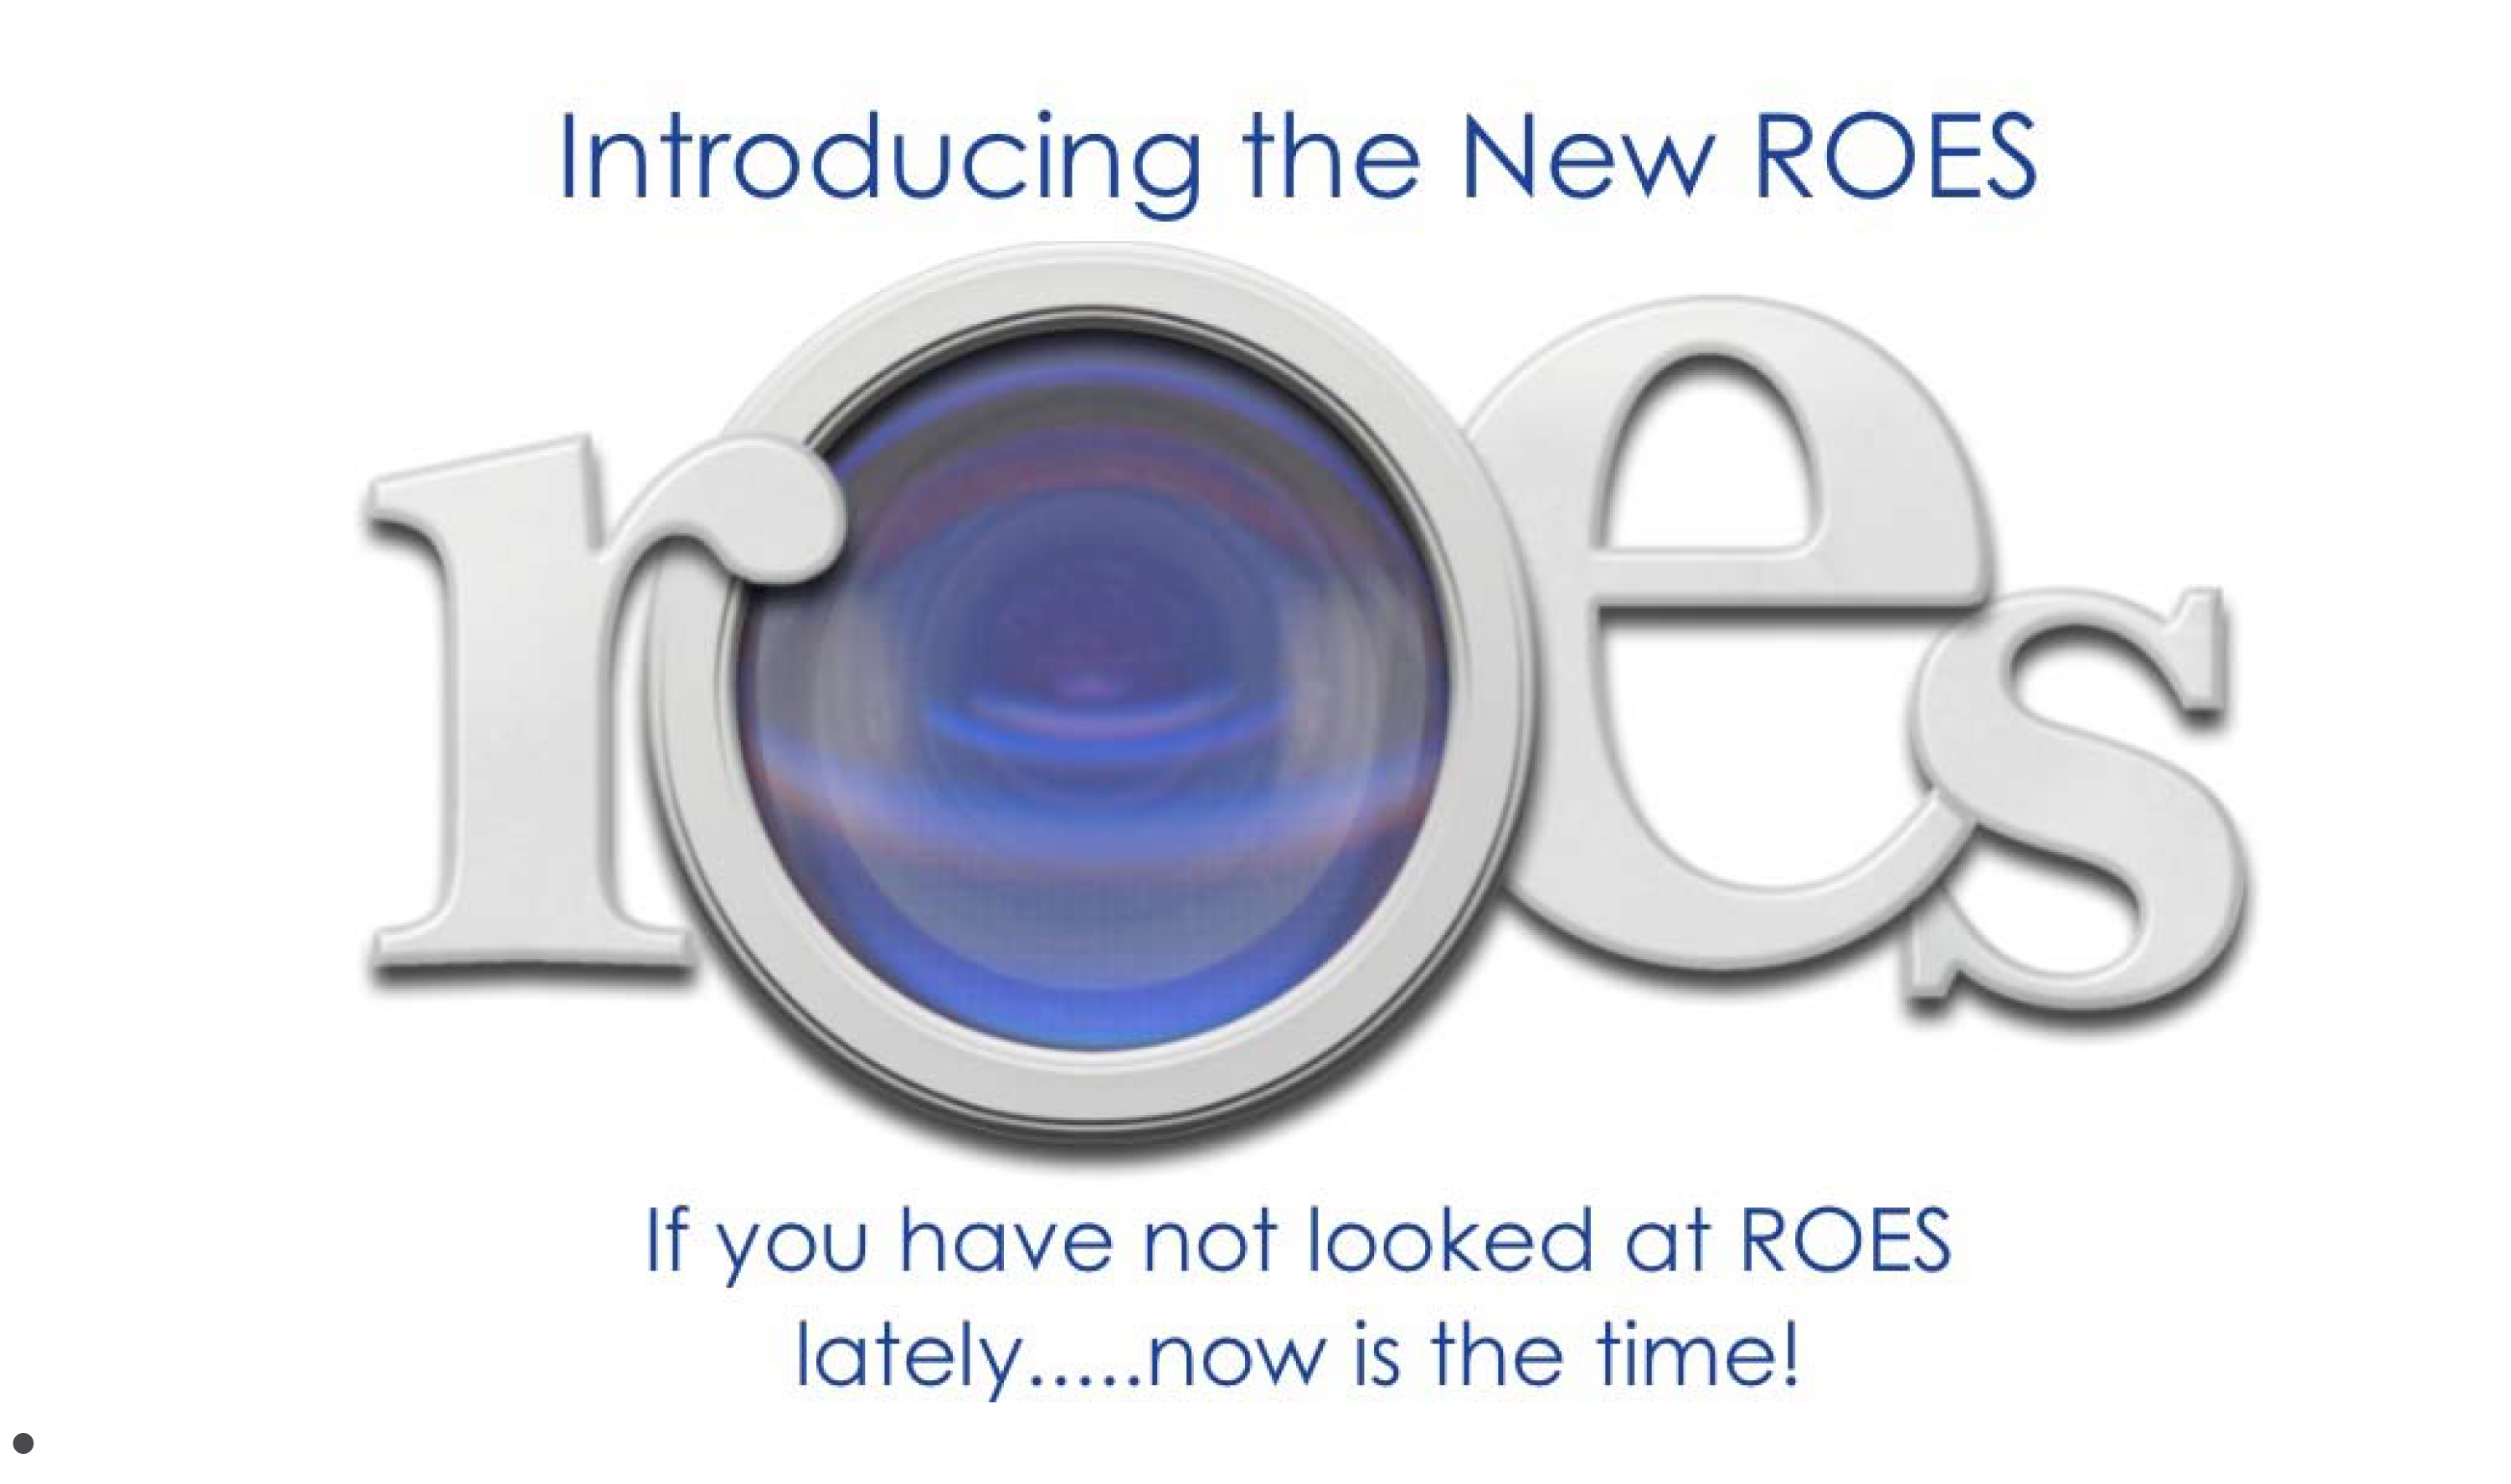 Roes photo ordering software